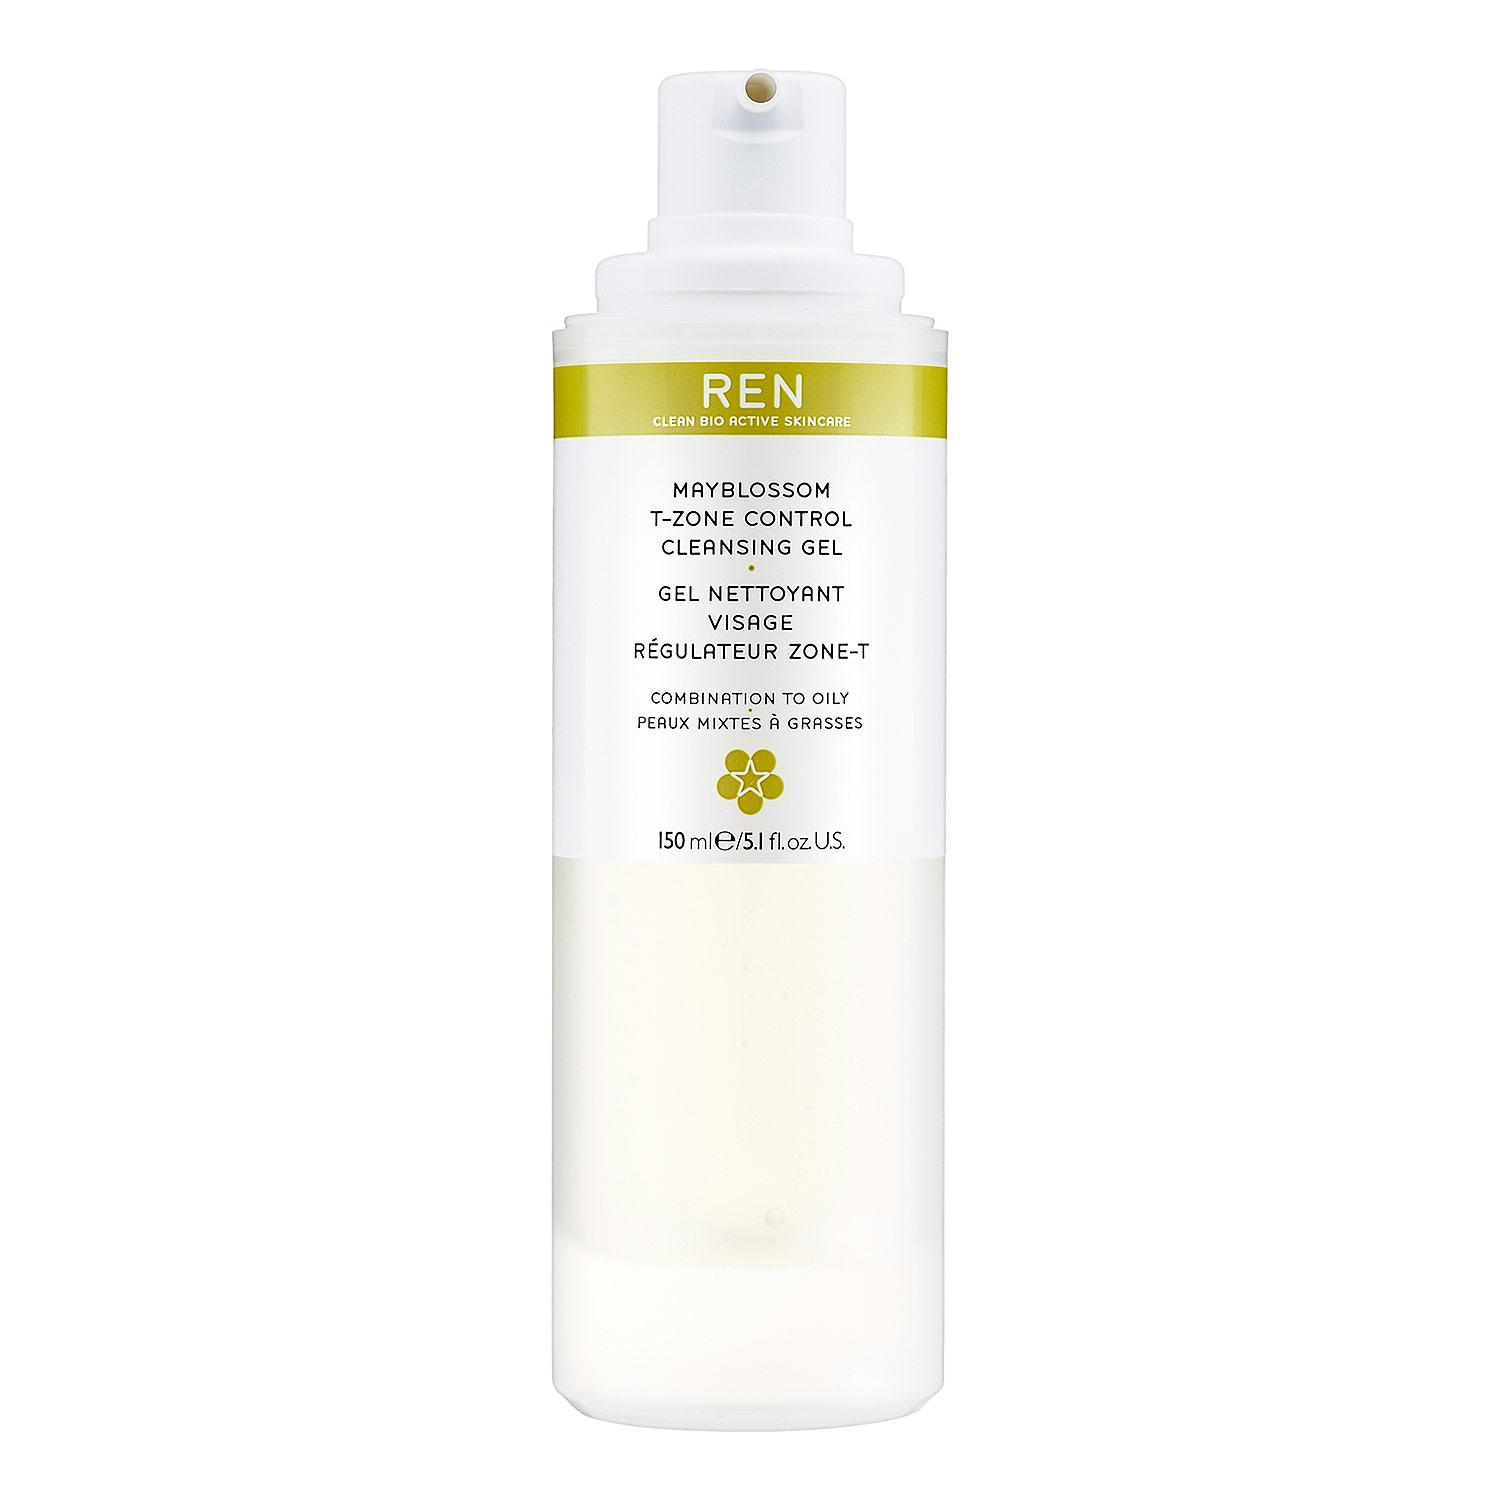 Mayblossom T-Zone Control Cleansing Gel